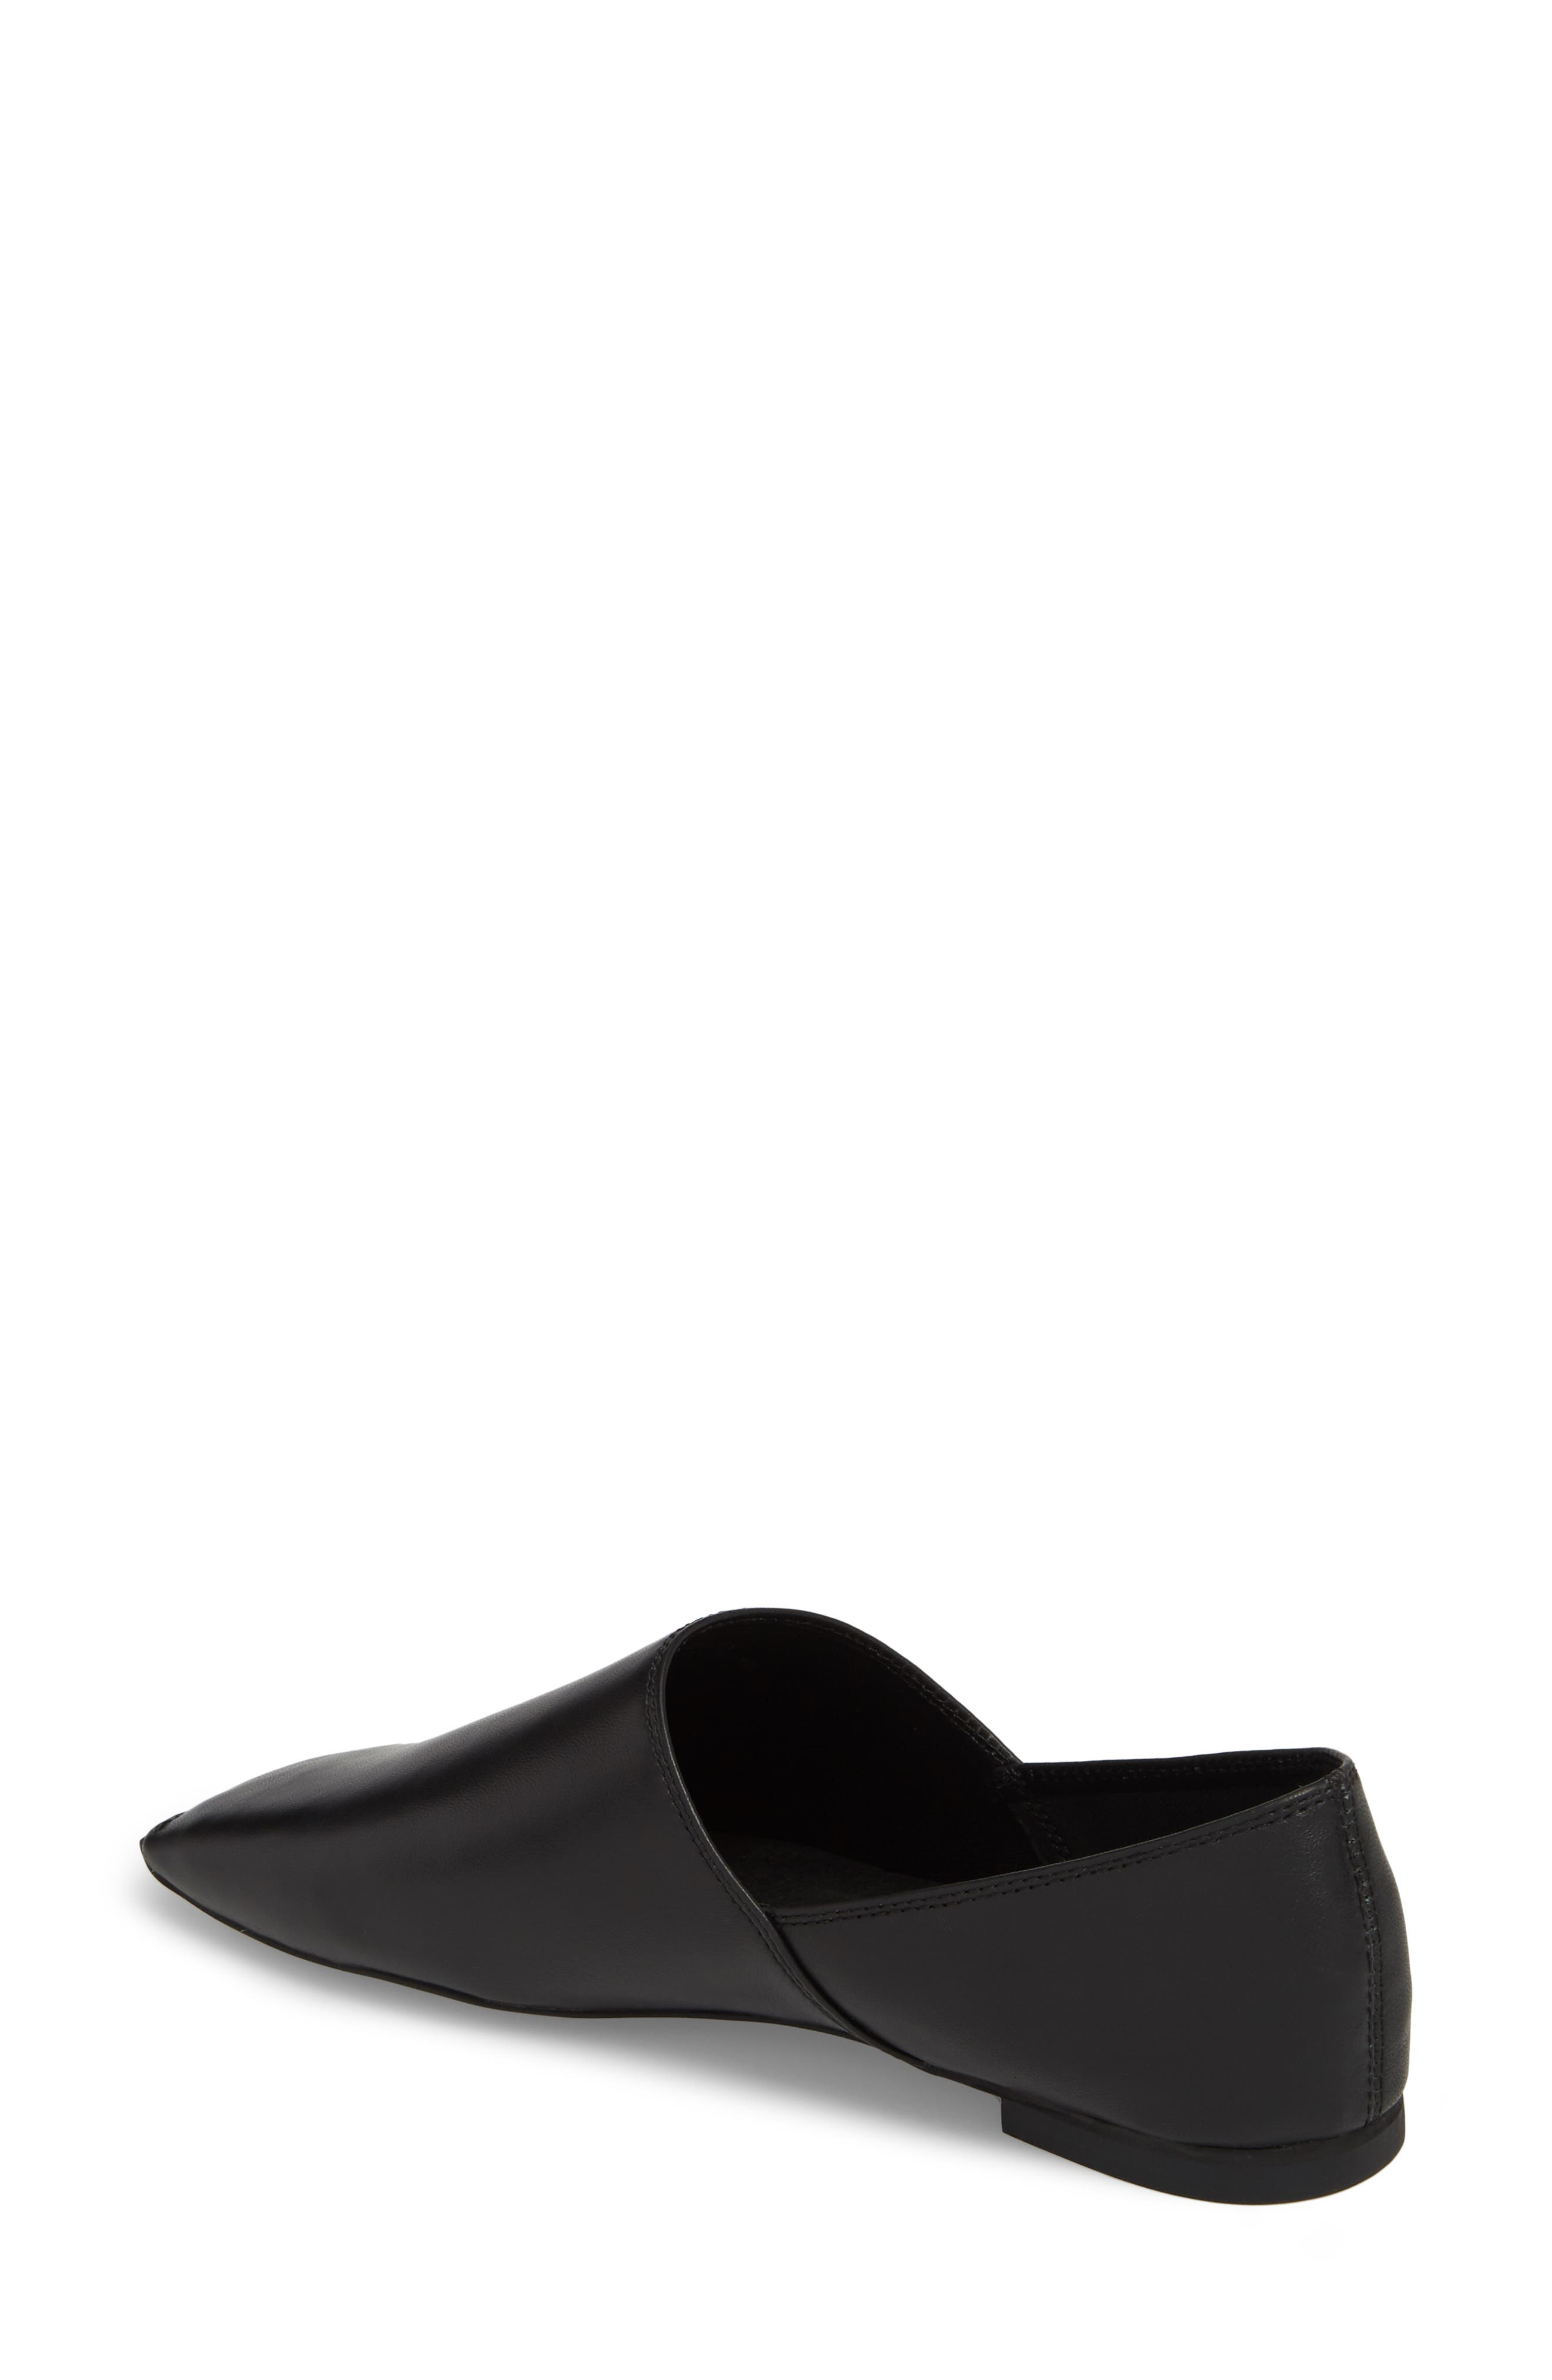 JEFFREY CAMPBELL,                             Lanvale Blunted Toe Flat,                             Alternate thumbnail 2, color,                             001